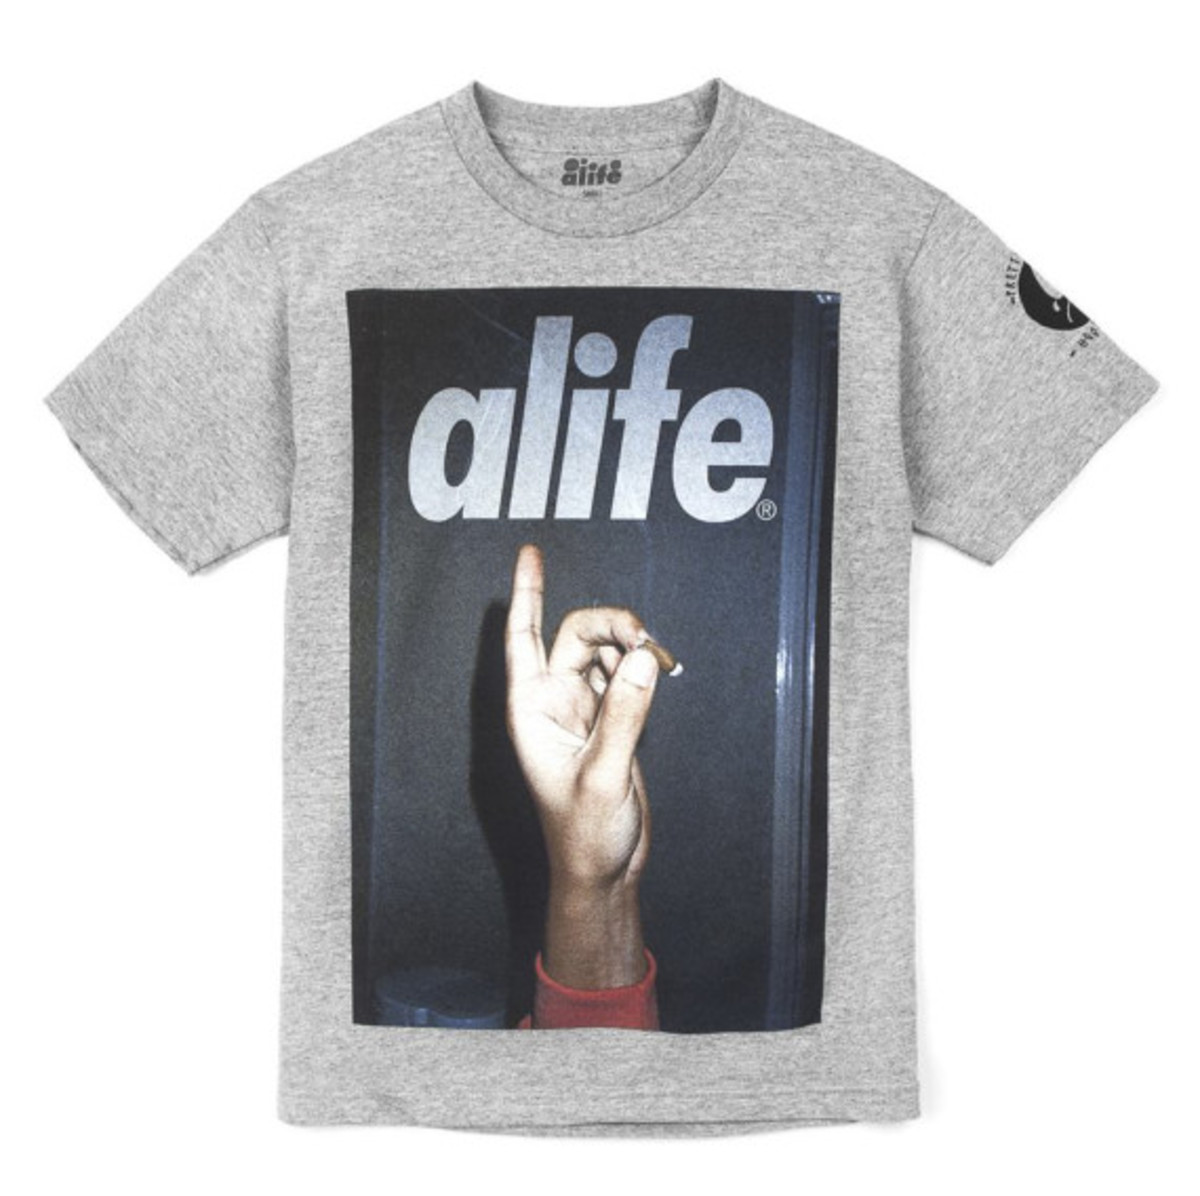 alife-spring-2013-tshirts-collection-available-now-04